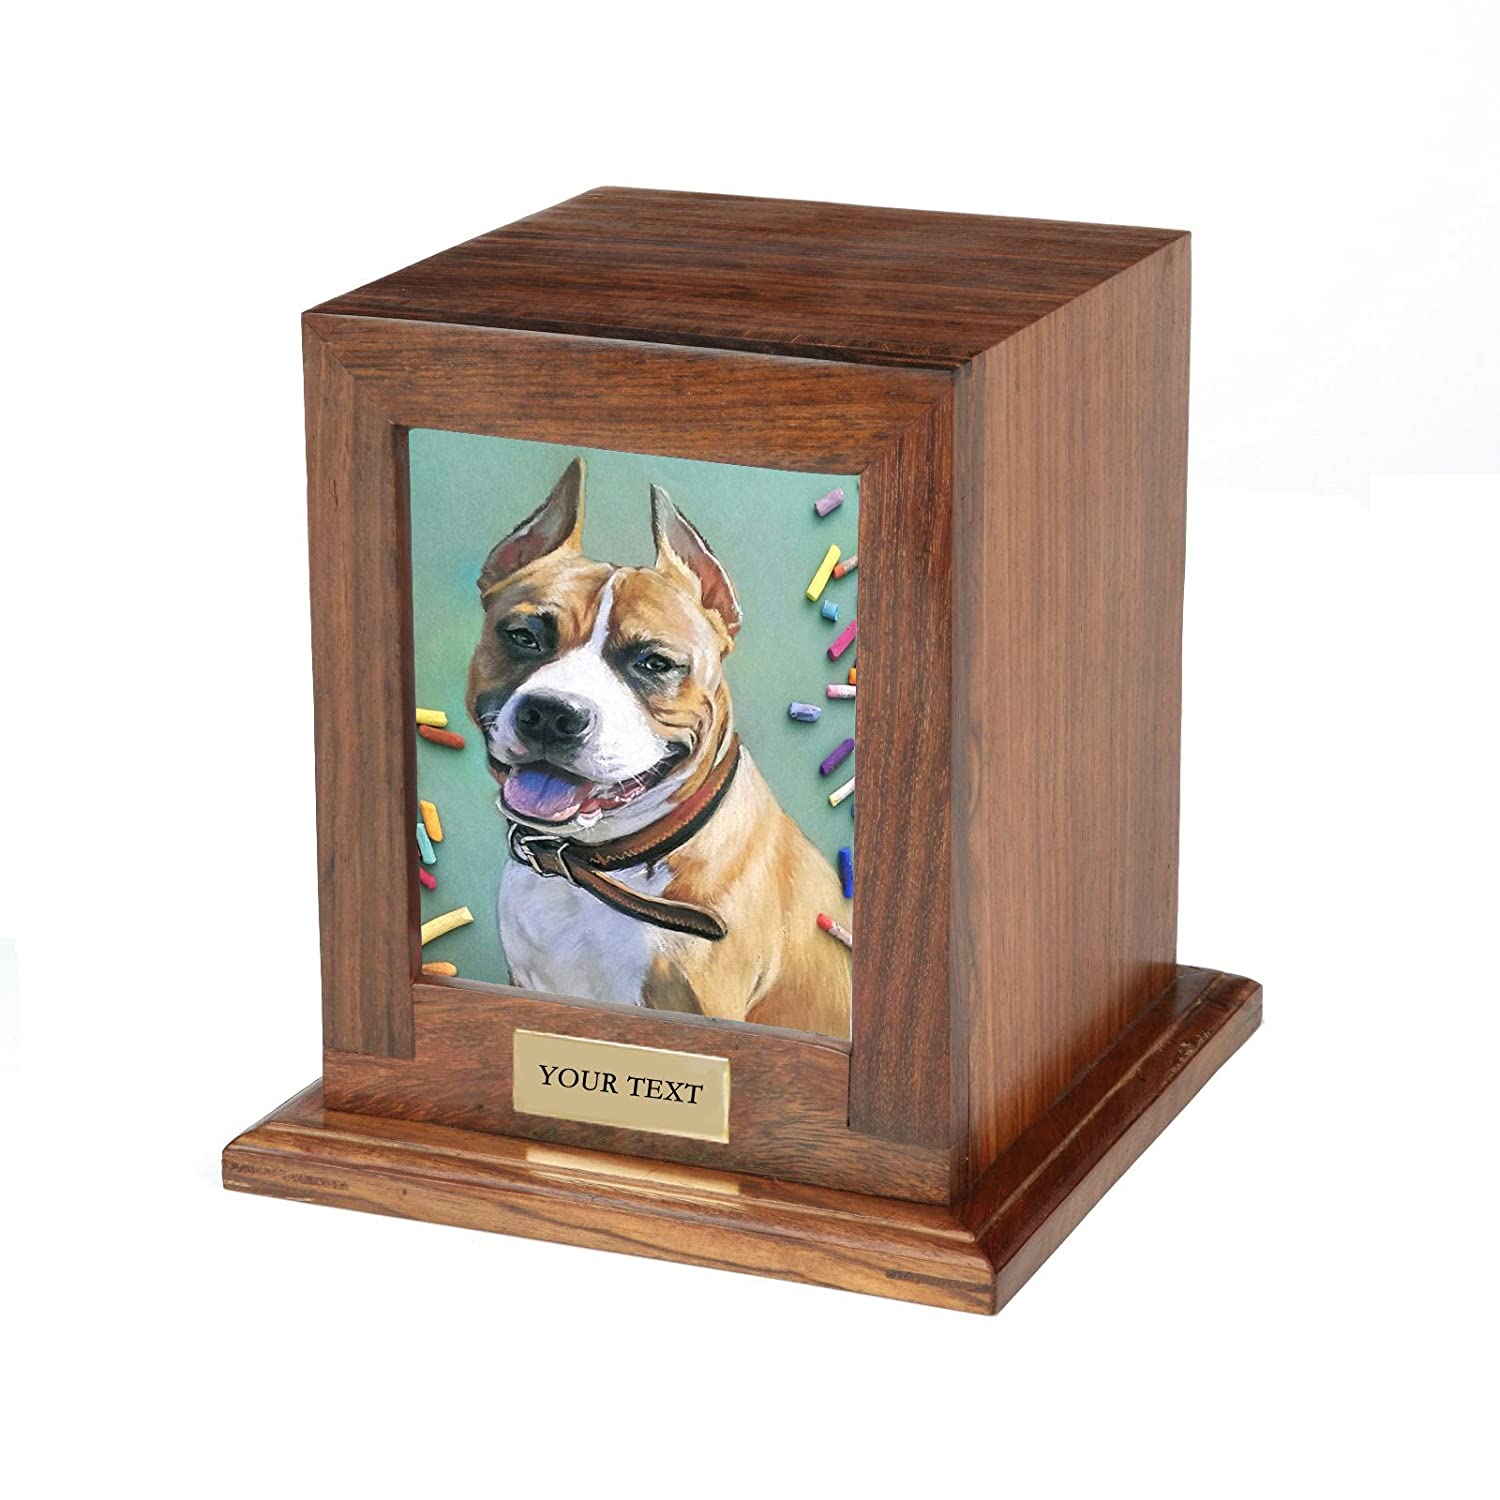 In Loving Memory LARGE Heart Wooden Pet Urn Cremation Ashes Dog Pet ...